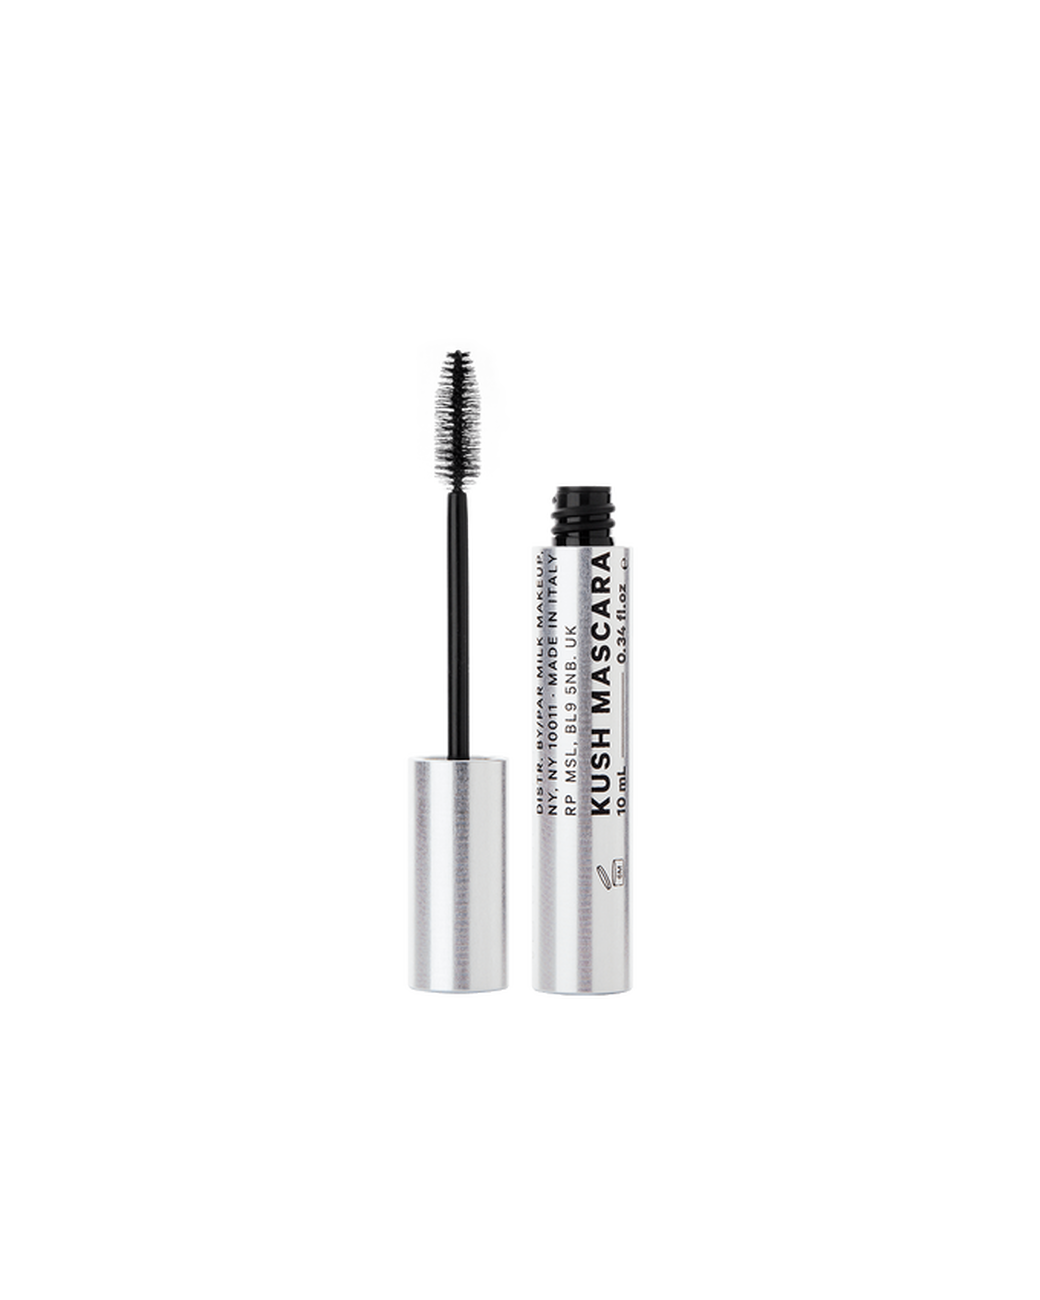 cbd beauty milk mascara sephora